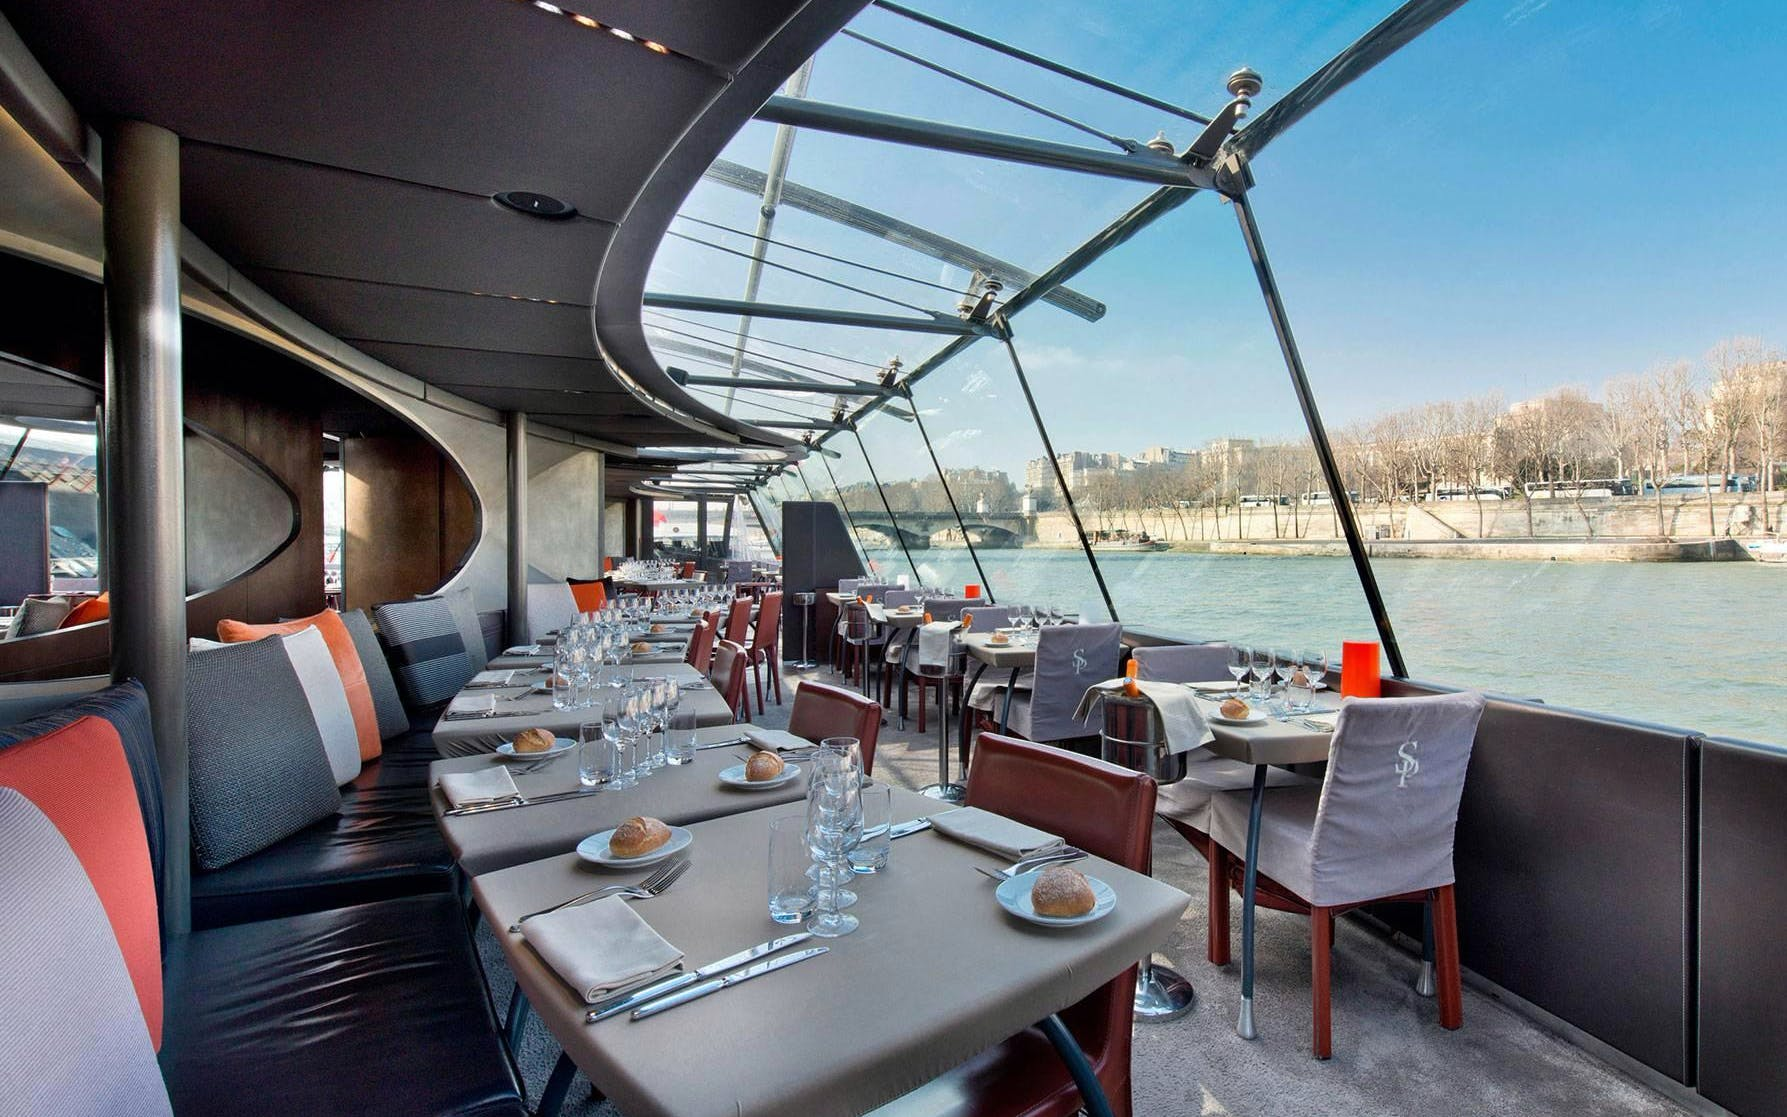 Bateaux Parisiens Seine Lunch Cruise with Live Music & Audio Commentary